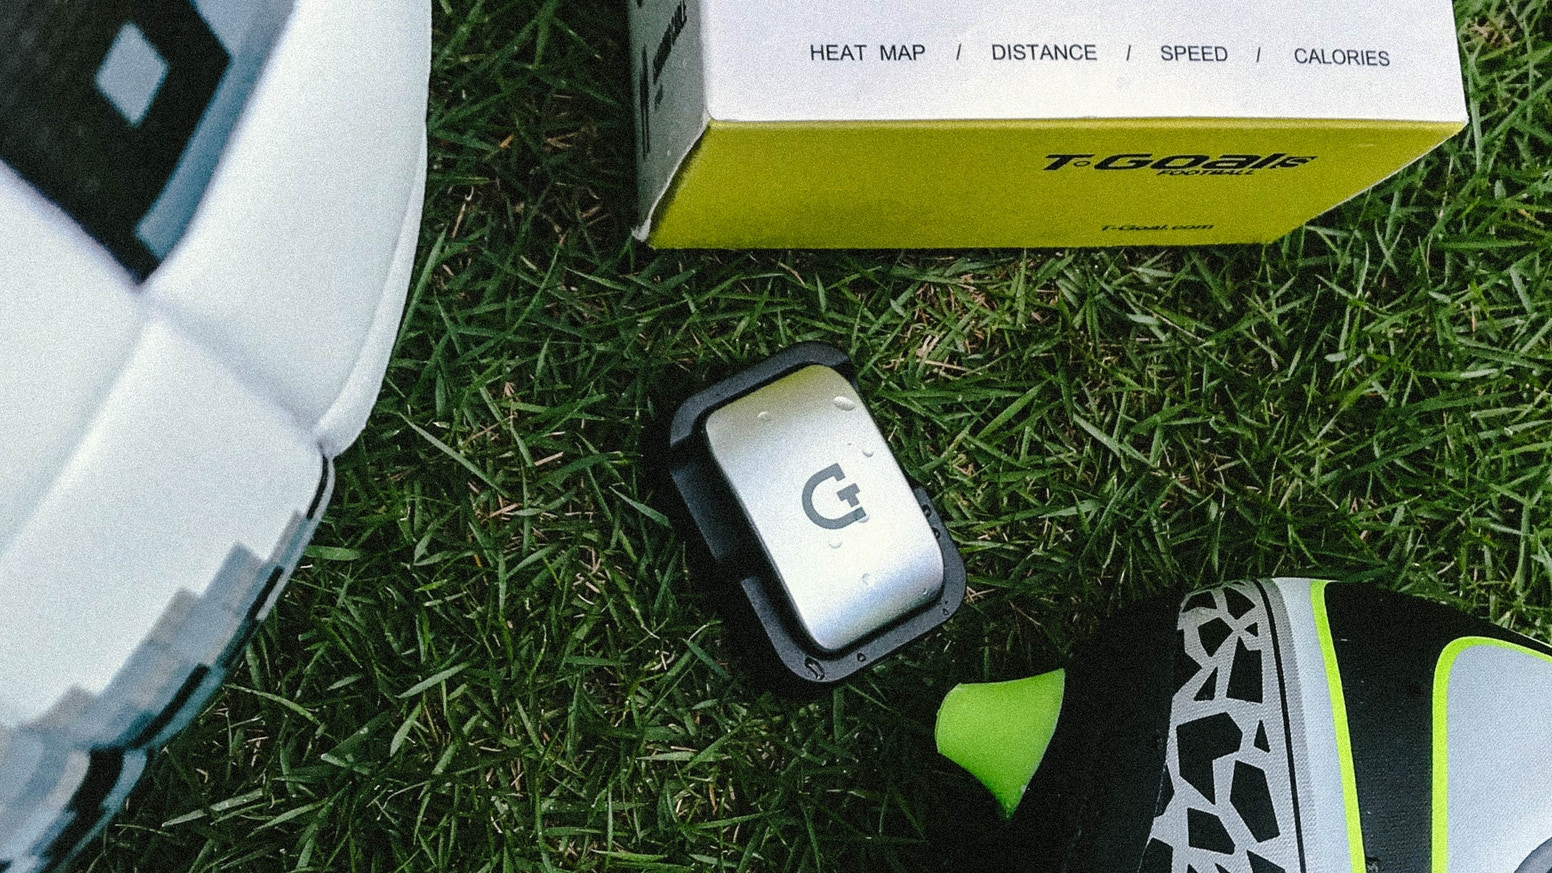 A smart wearable sensor that collects your in-game football(soccer) data, allowing you to adjust and plan your training like the pros!